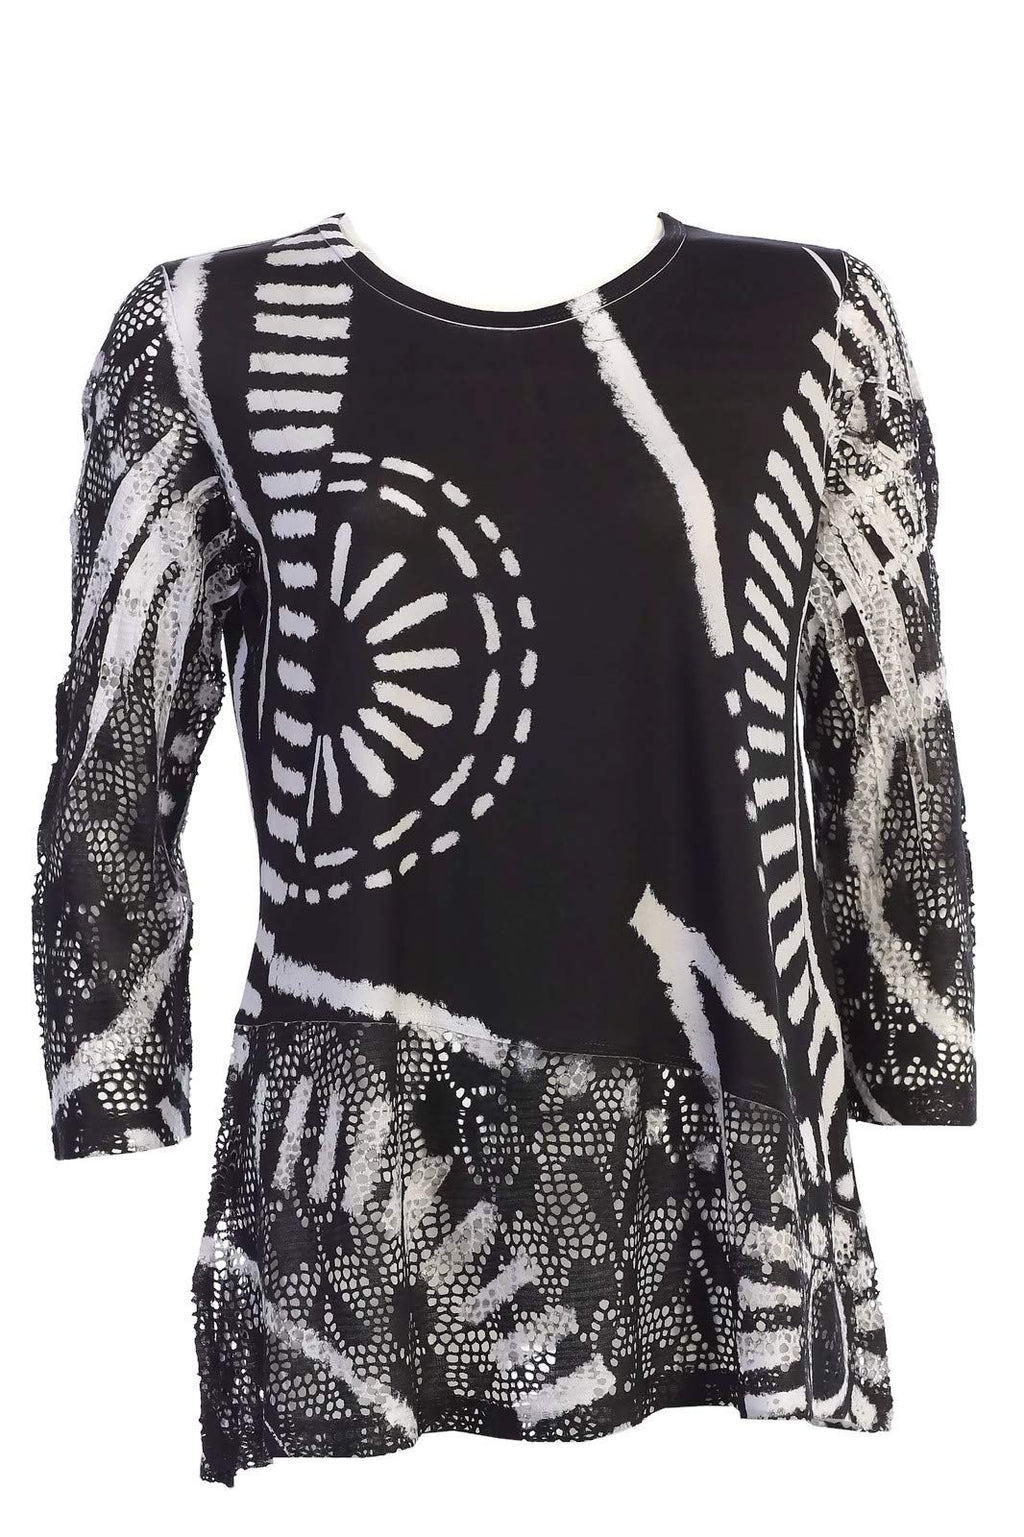 Women's Travel Crochet Mesh Contrast Tunic Top.